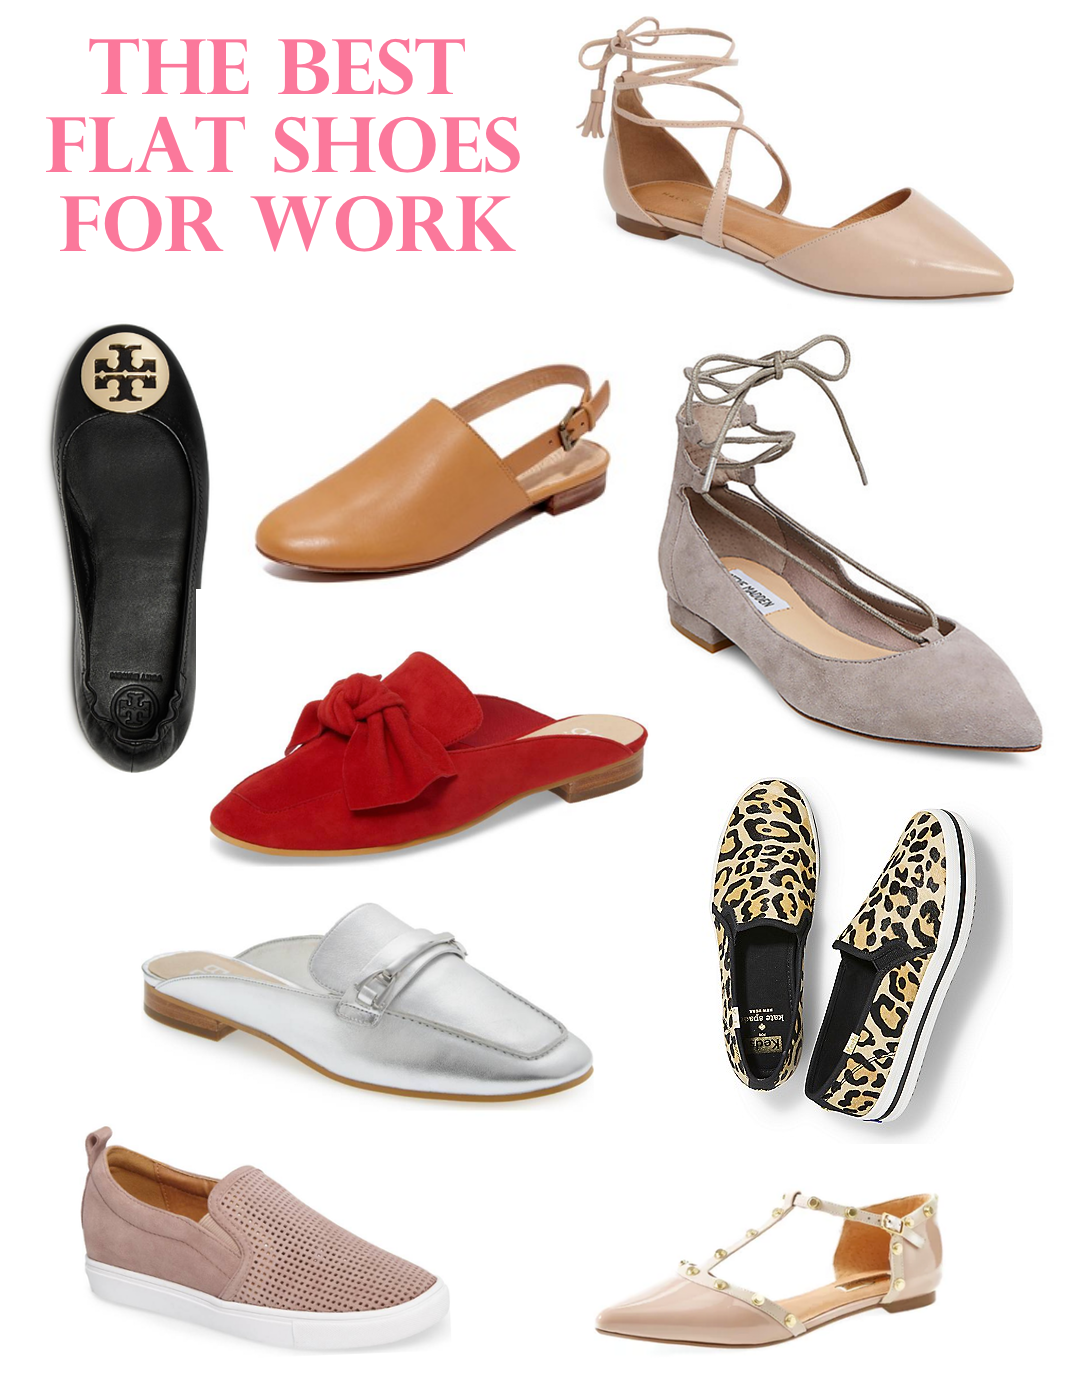 THE BEST FLAT SHOES FOR WORK - THE BEST THING